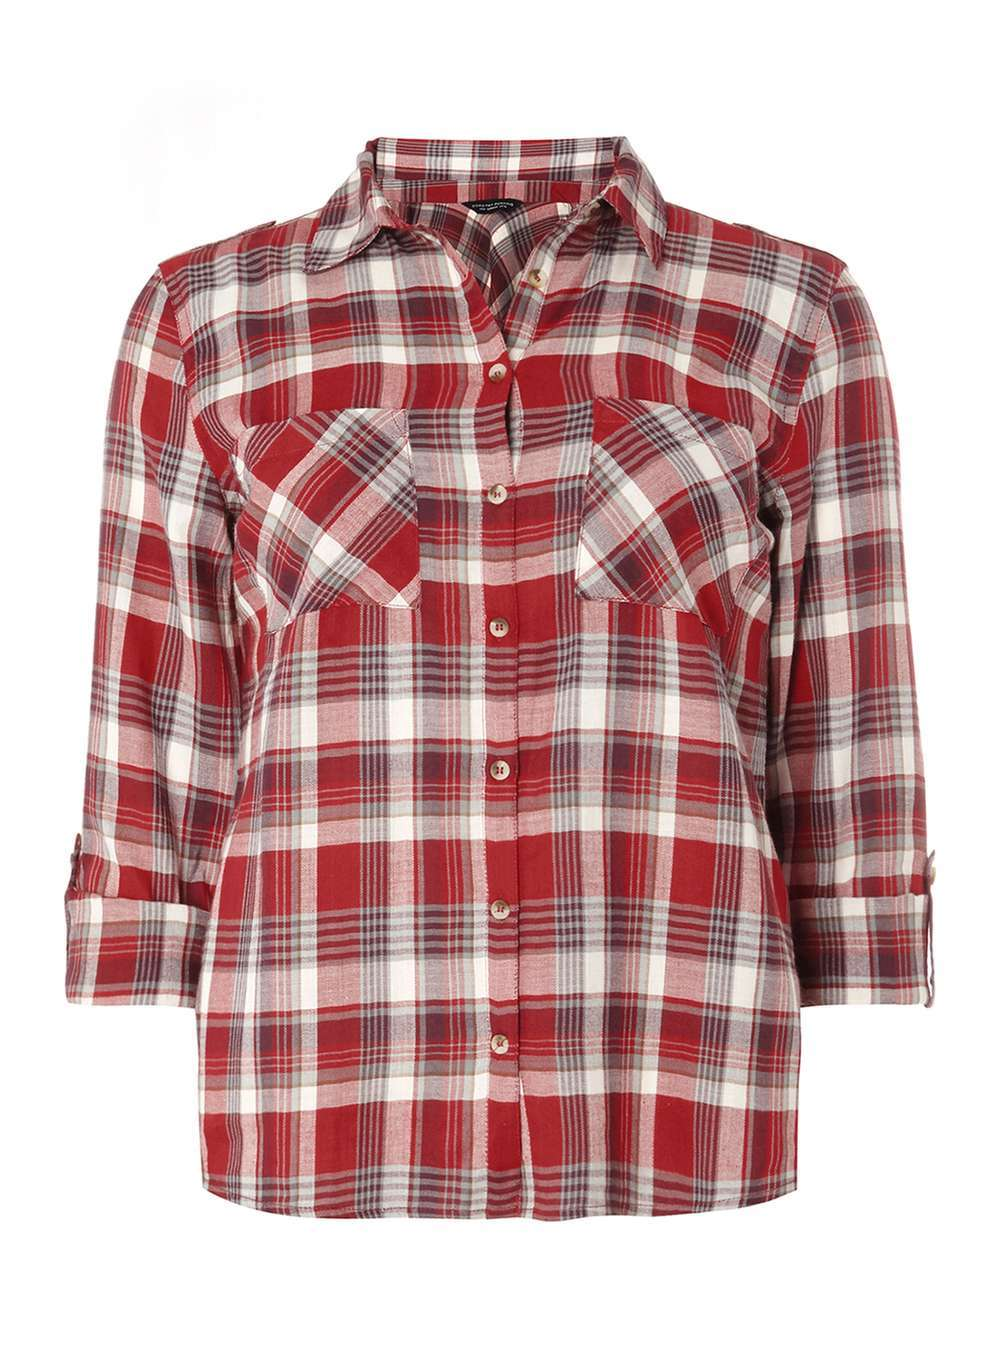 Womens Autumn Red Check Shirt Red - neckline: shirt collar/peter pan/zip with opening; pattern: checked/gingham; style: shirt; predominant colour: true red; secondary colour: mid grey; occasions: casual; length: standard; fibres: cotton - 100%; fit: loose; sleeve length: 3/4 length; sleeve style: standard; texture group: cotton feel fabrics; pattern type: fabric; pattern size: standard; multicoloured: multicoloured; season: a/w 2016; wardrobe: highlight